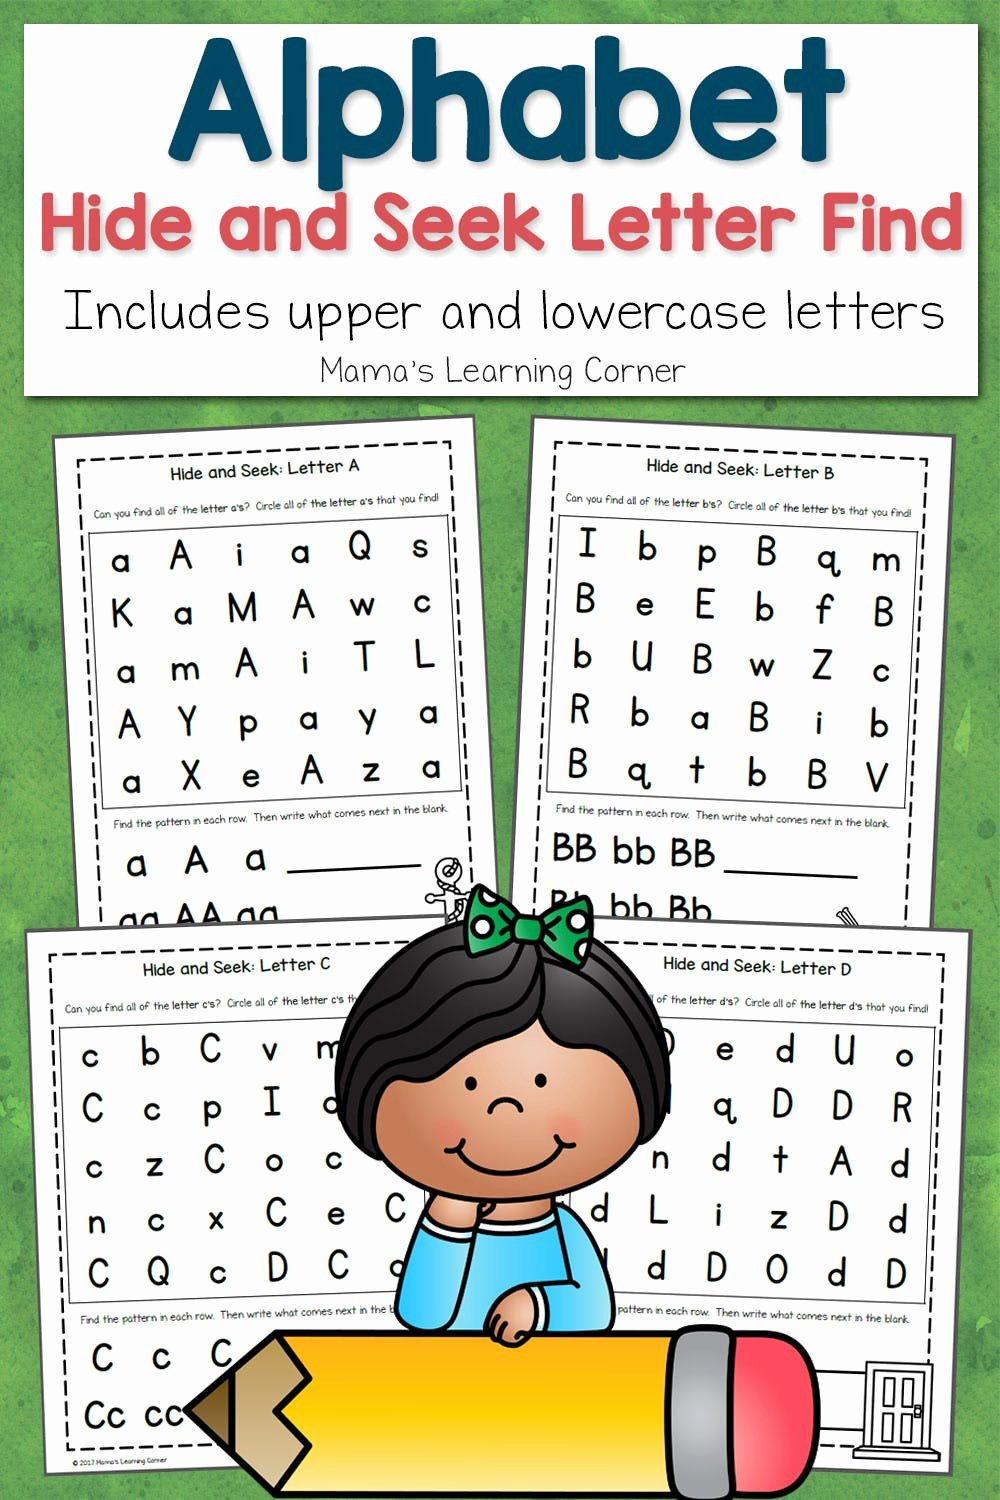 Find the Letter Worksheets for Preschoolers Best Of Abc Hide and Seek Letter Find for Preschoolers Mamas